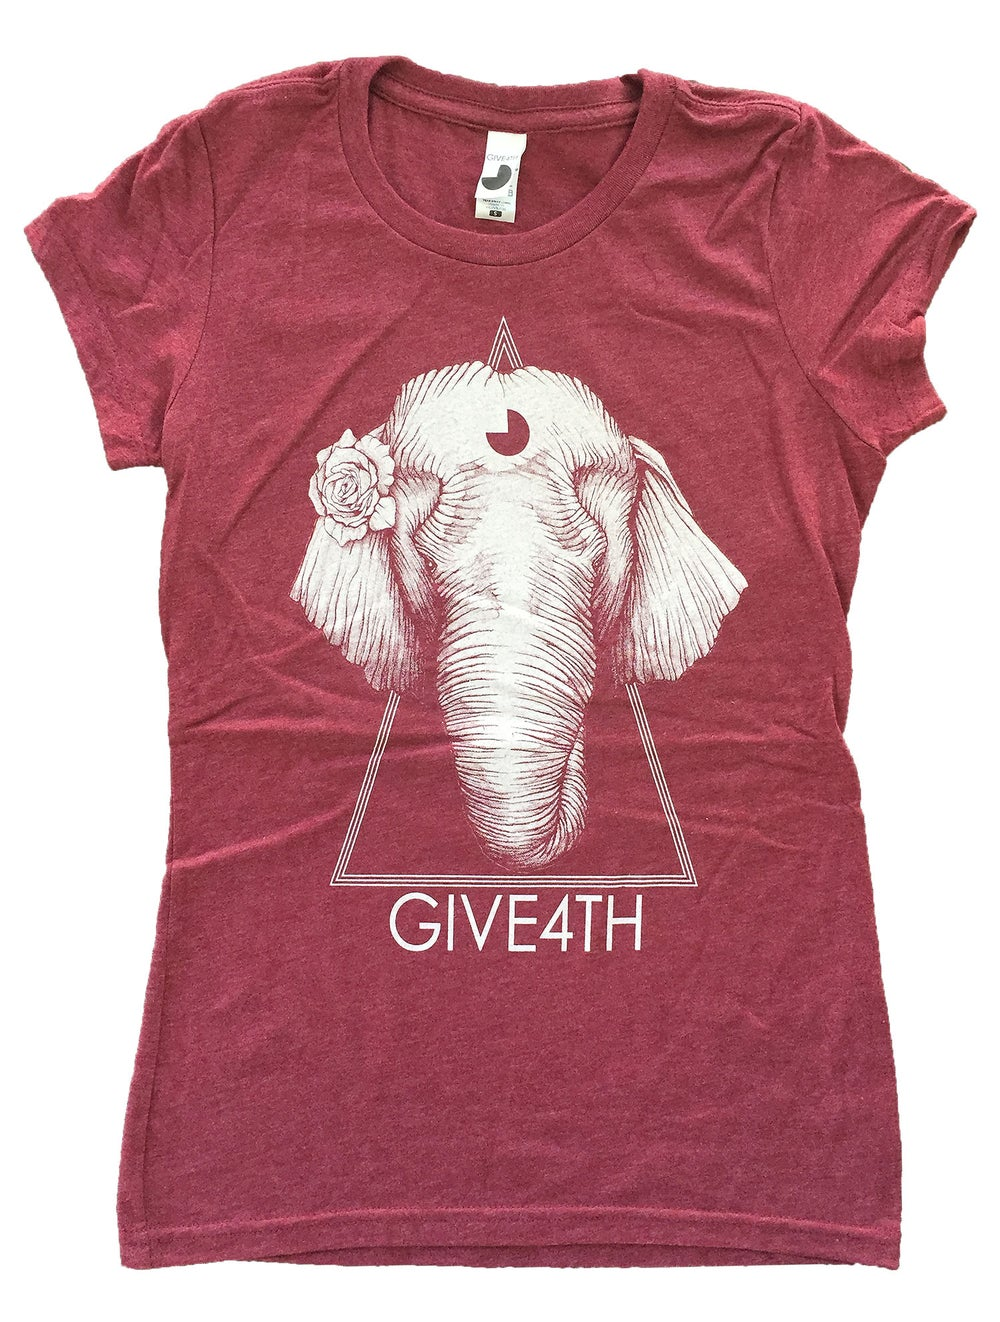 Image of Give4th Elephant Nature Park Women's Tshirt